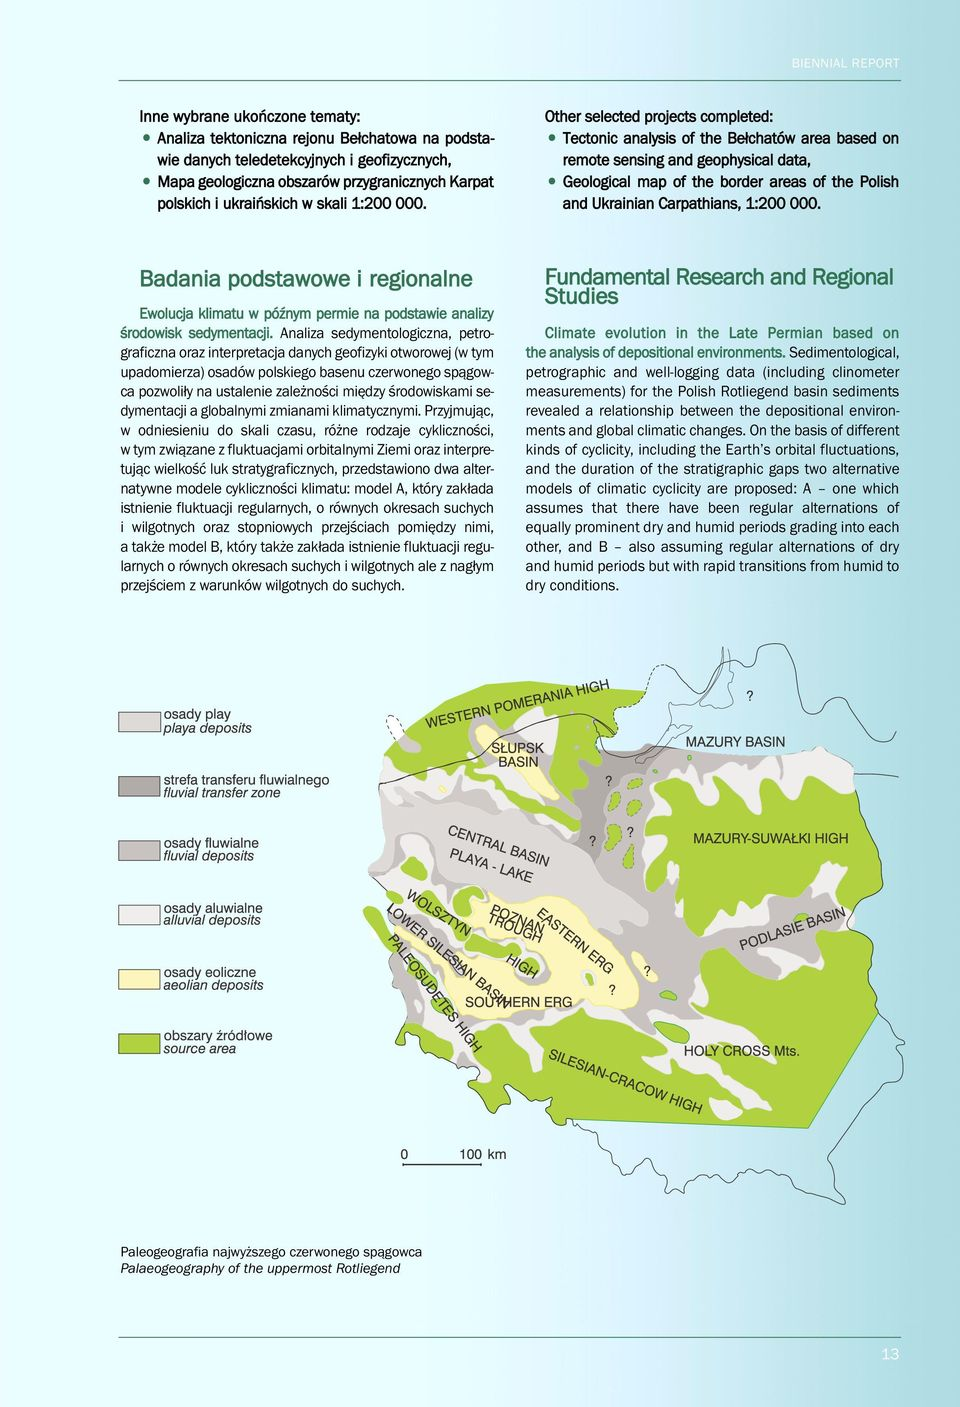 Other selected projects completed: Tectonic analysis of the Bełchatów area based on remote sensing and geophysical data, Geological map of the border areas of the Polish and Ukrainian Carpathians,